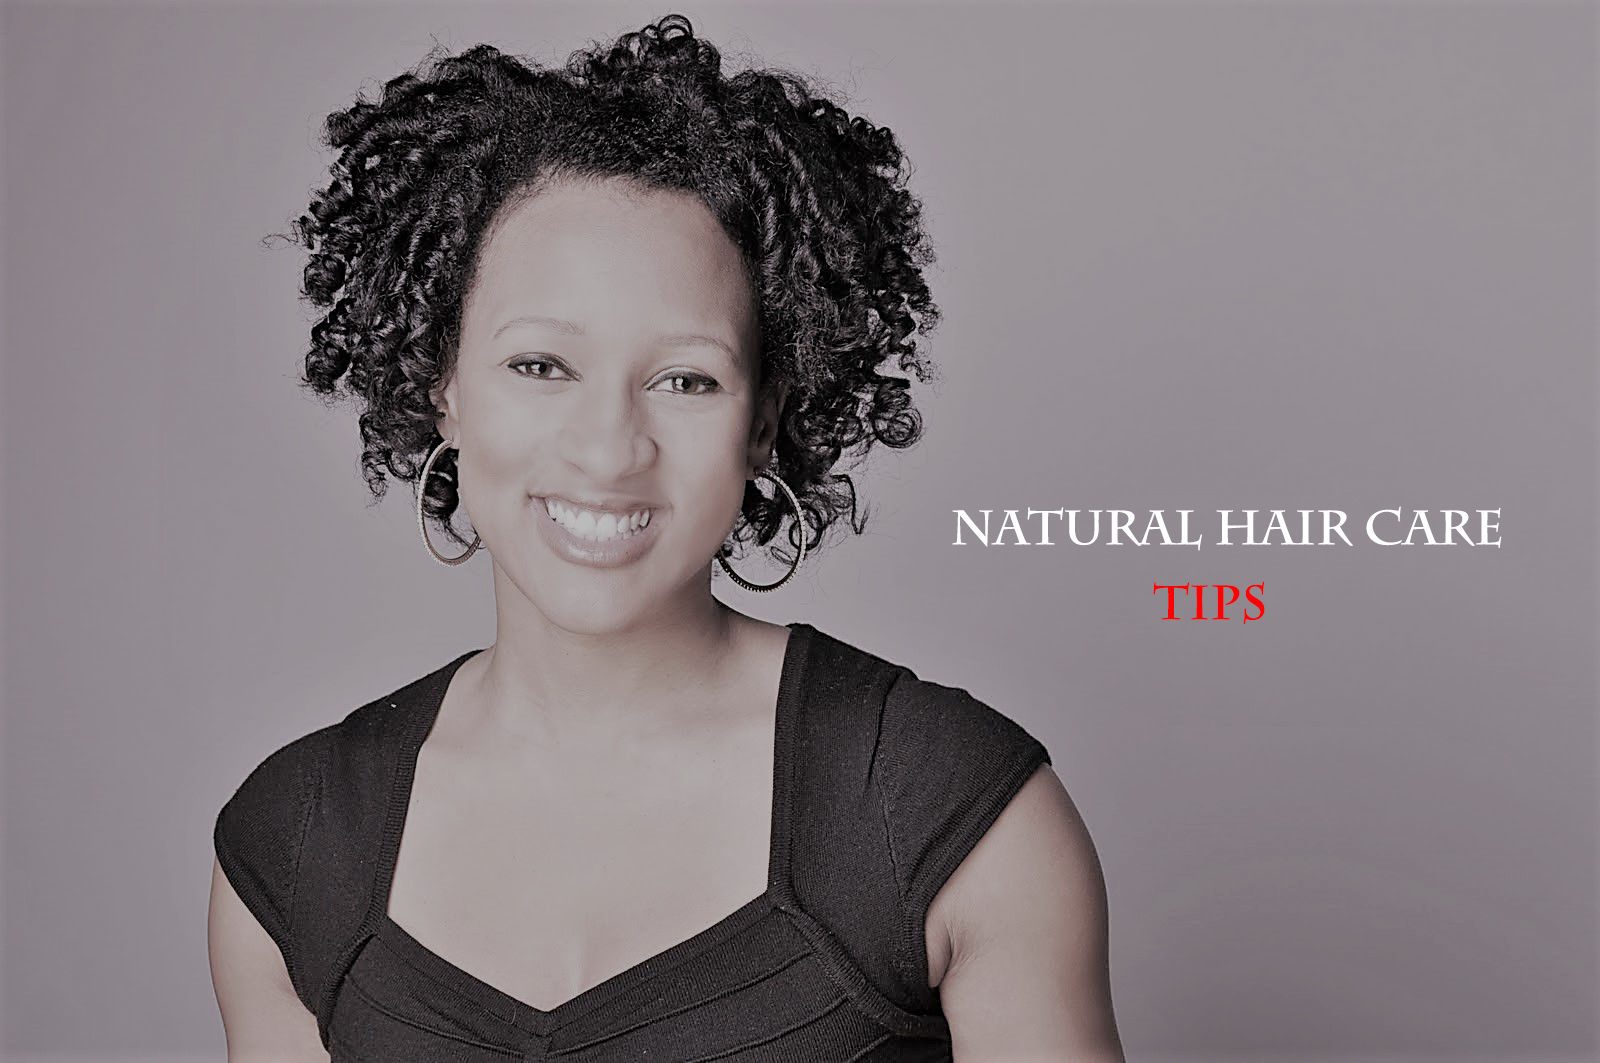 Best Way to Take Care of Natural Hair